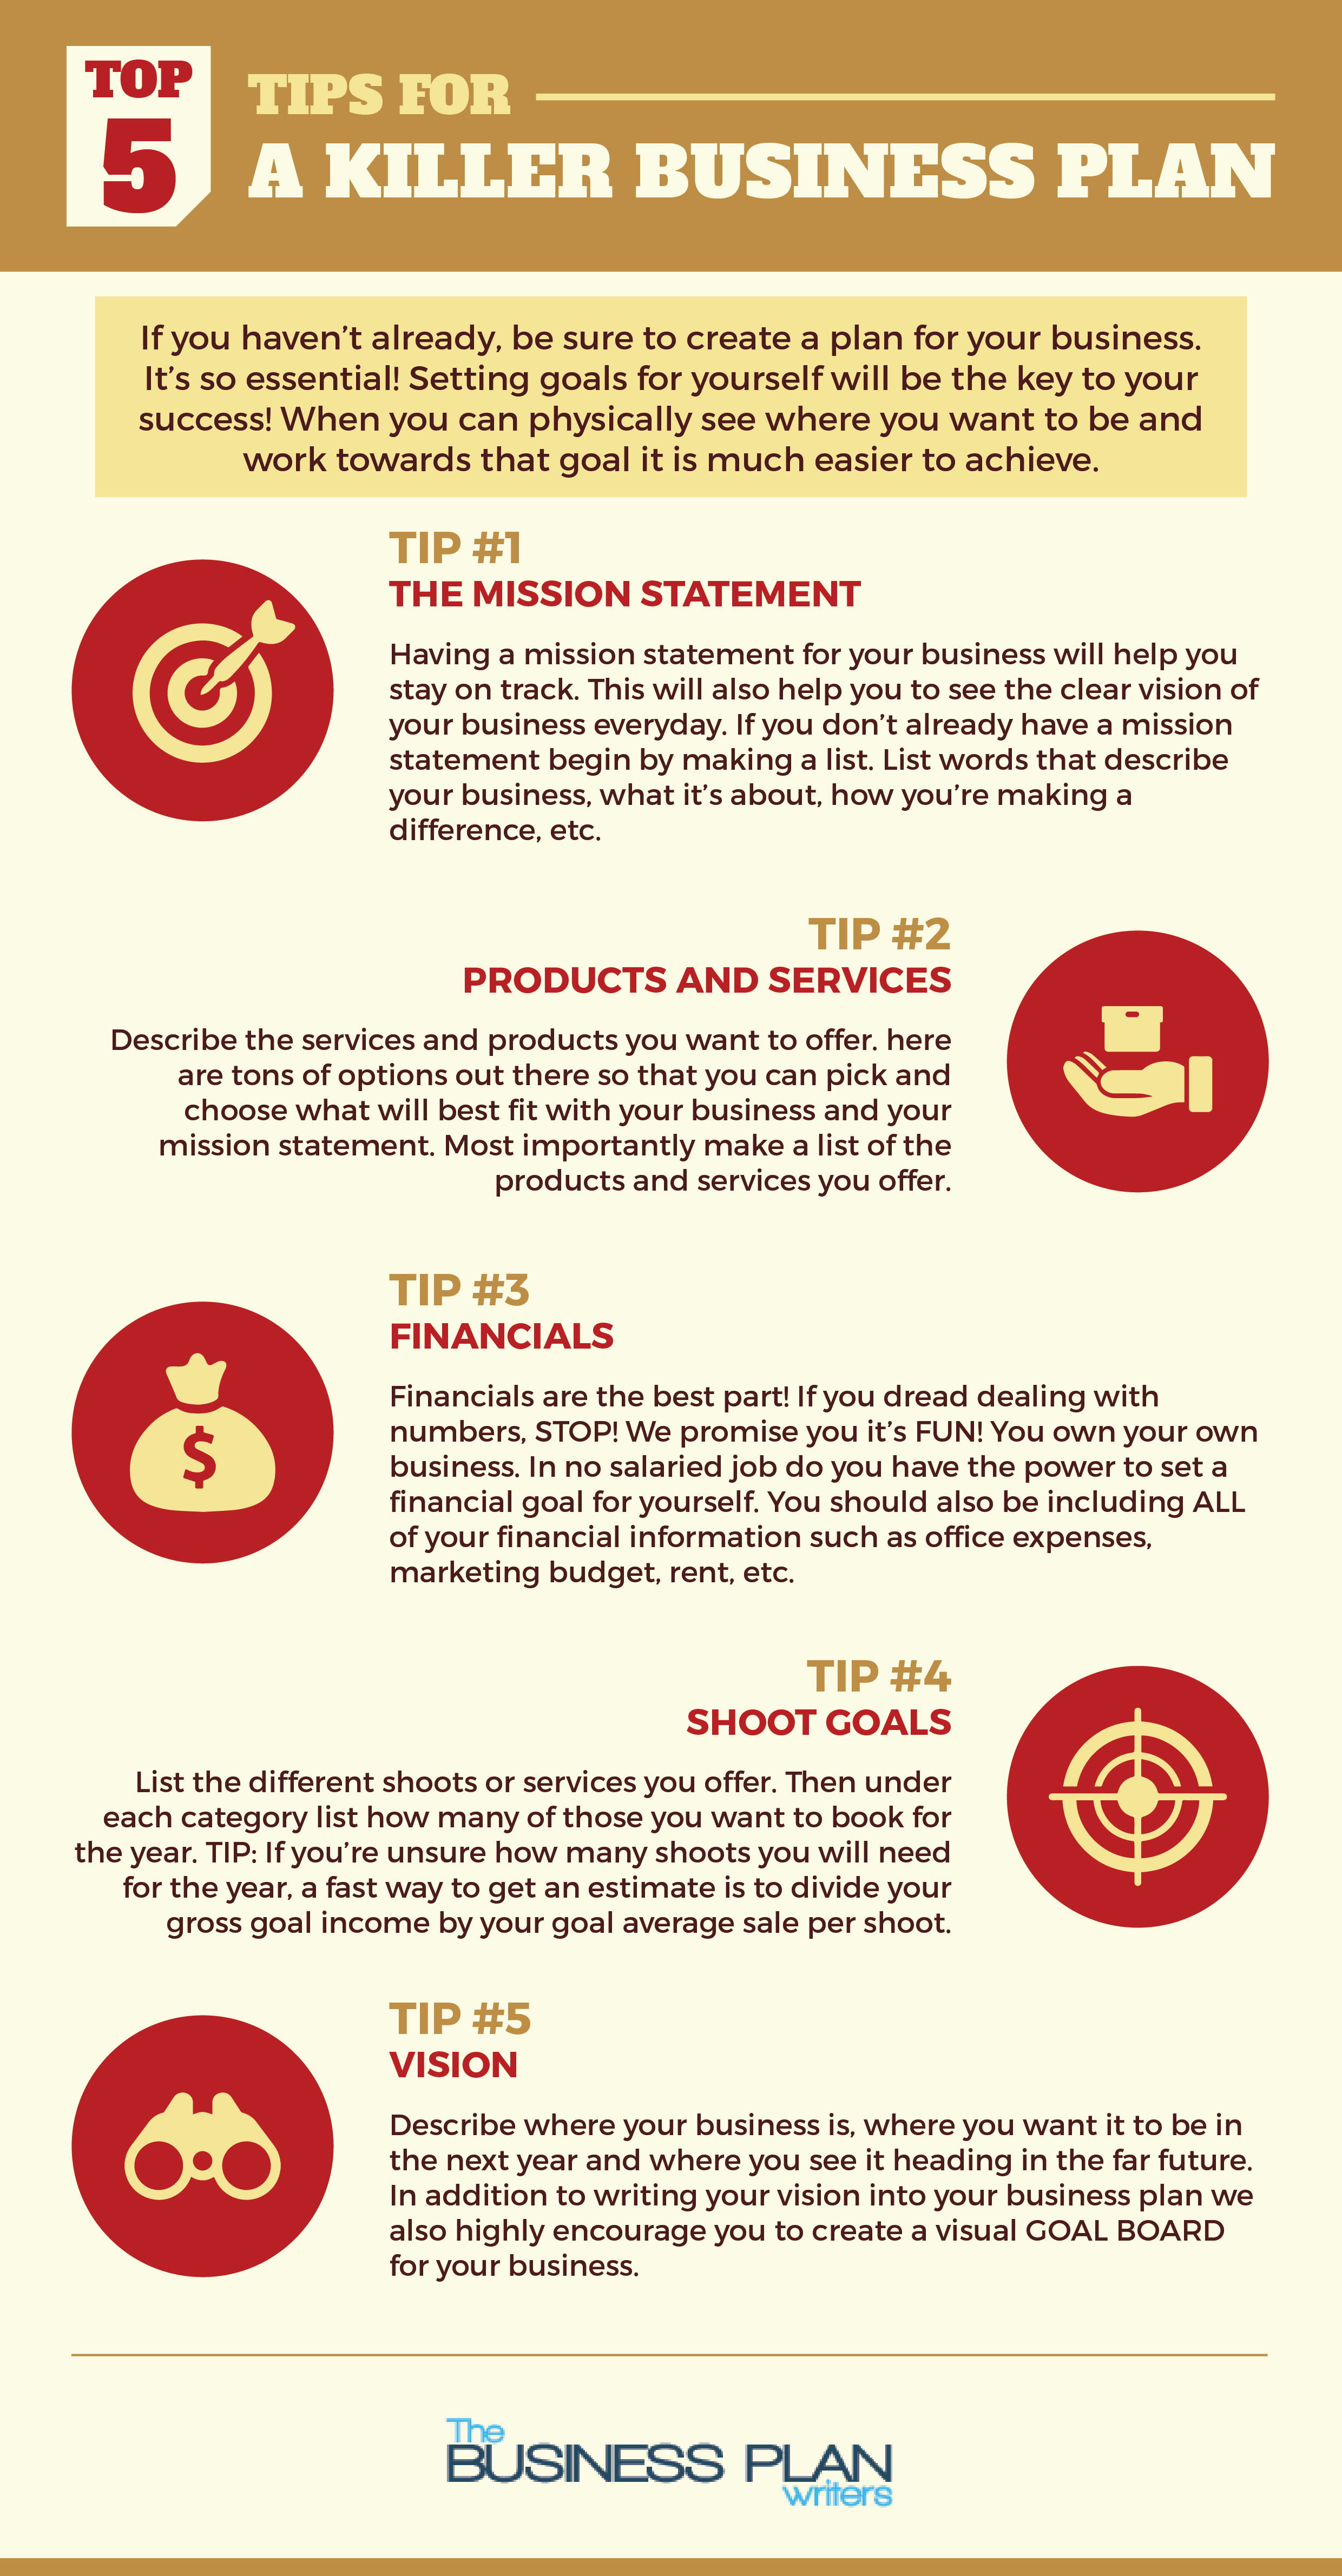 Top 5 Tips for a Killer Business Plan Infographic